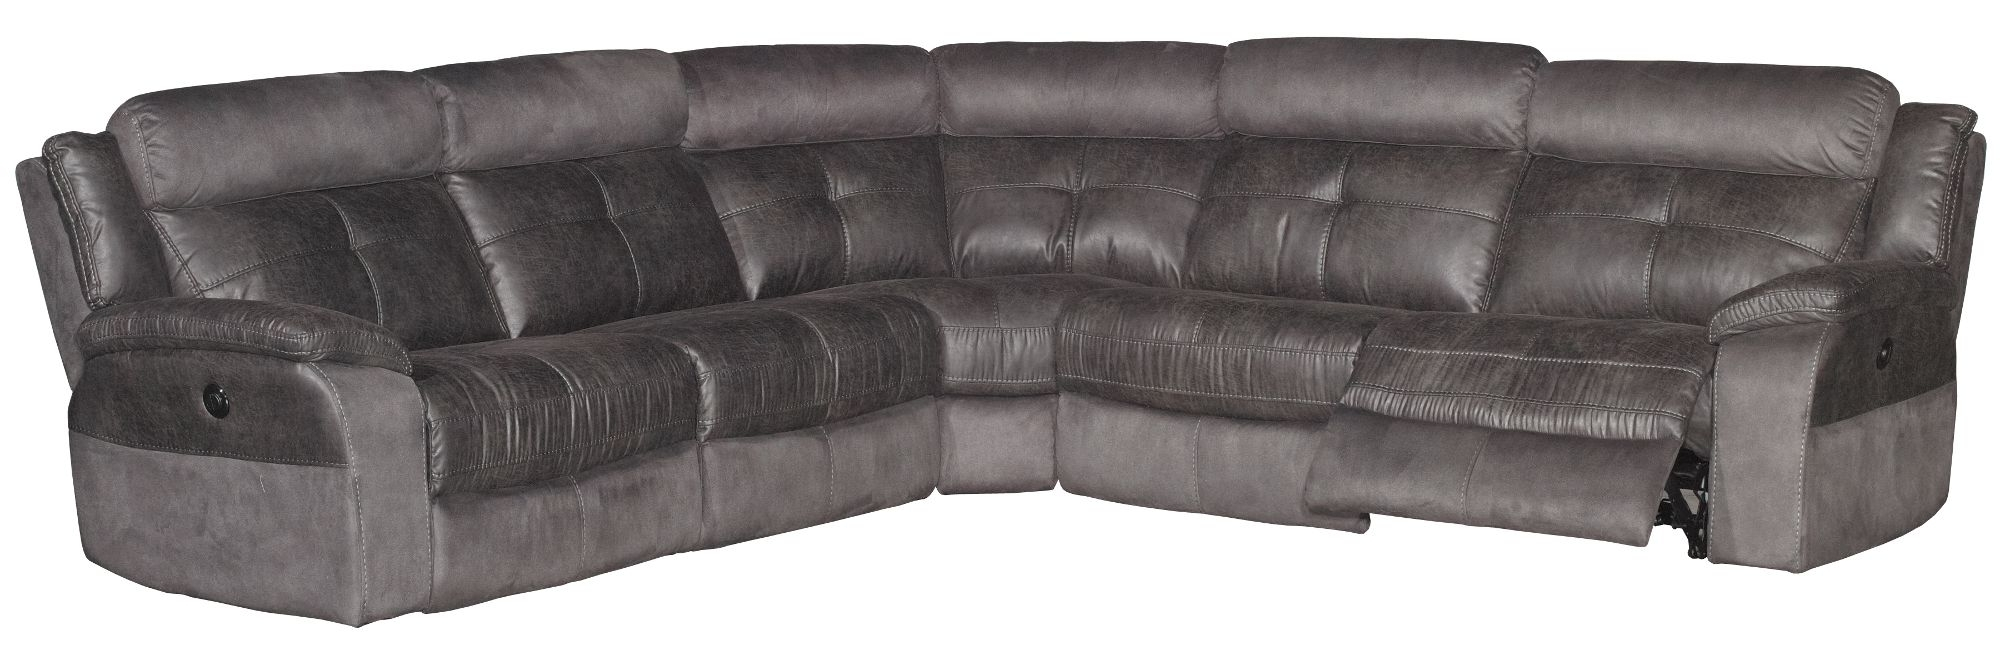 Displaying Gallery of Denver Sectional Sofas (View 20 of 20 ...